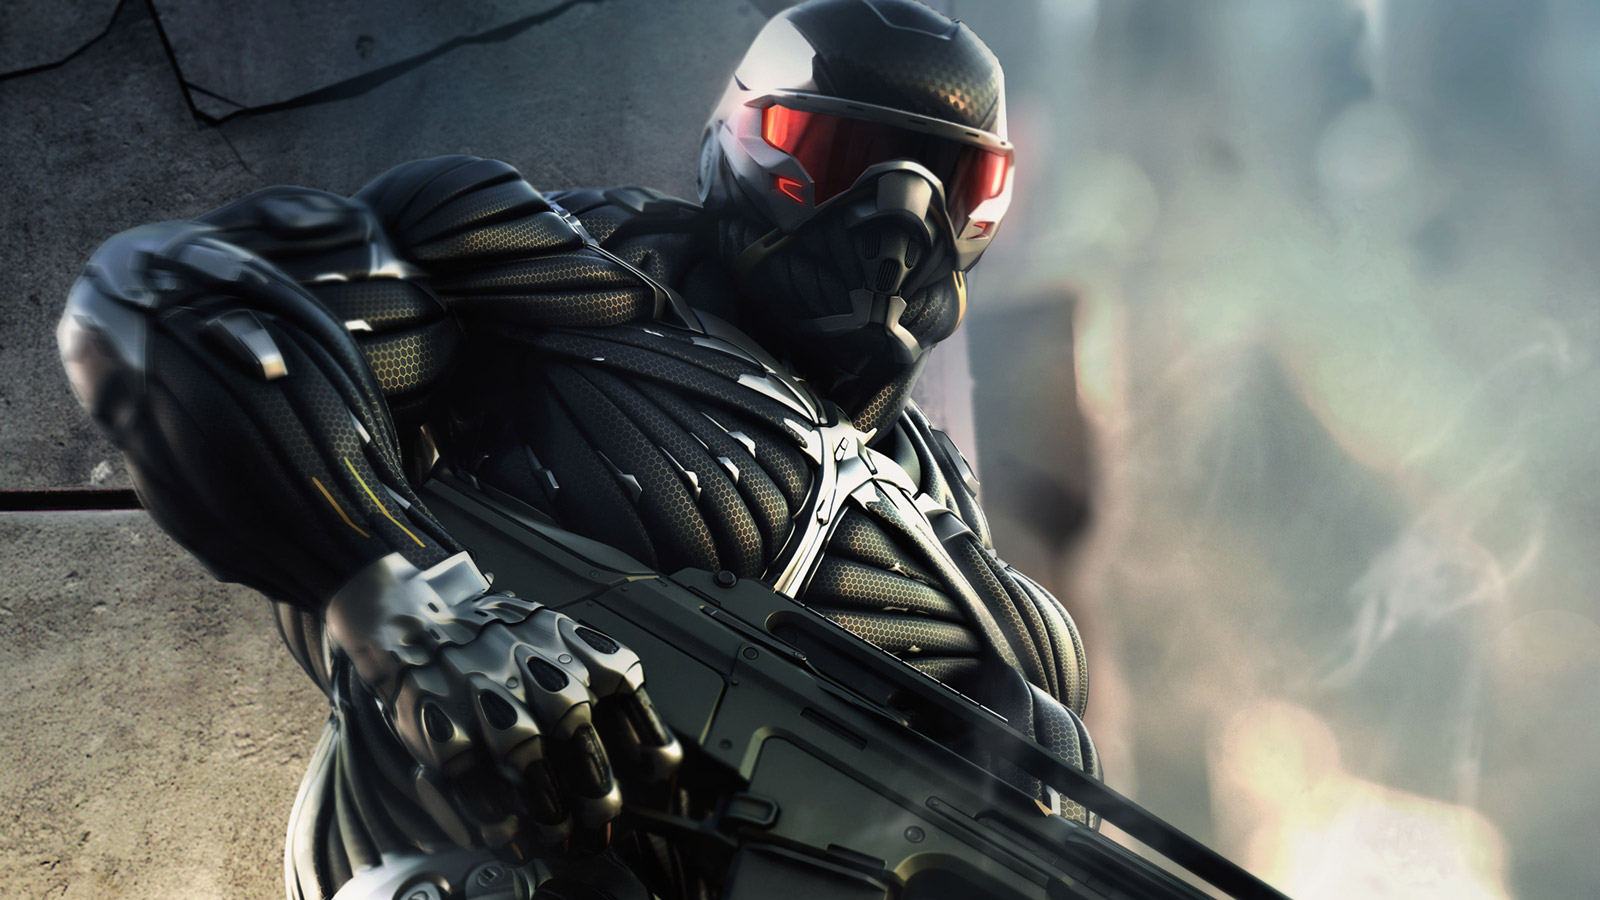 Crysis 2 Wallpaper in 1600x900